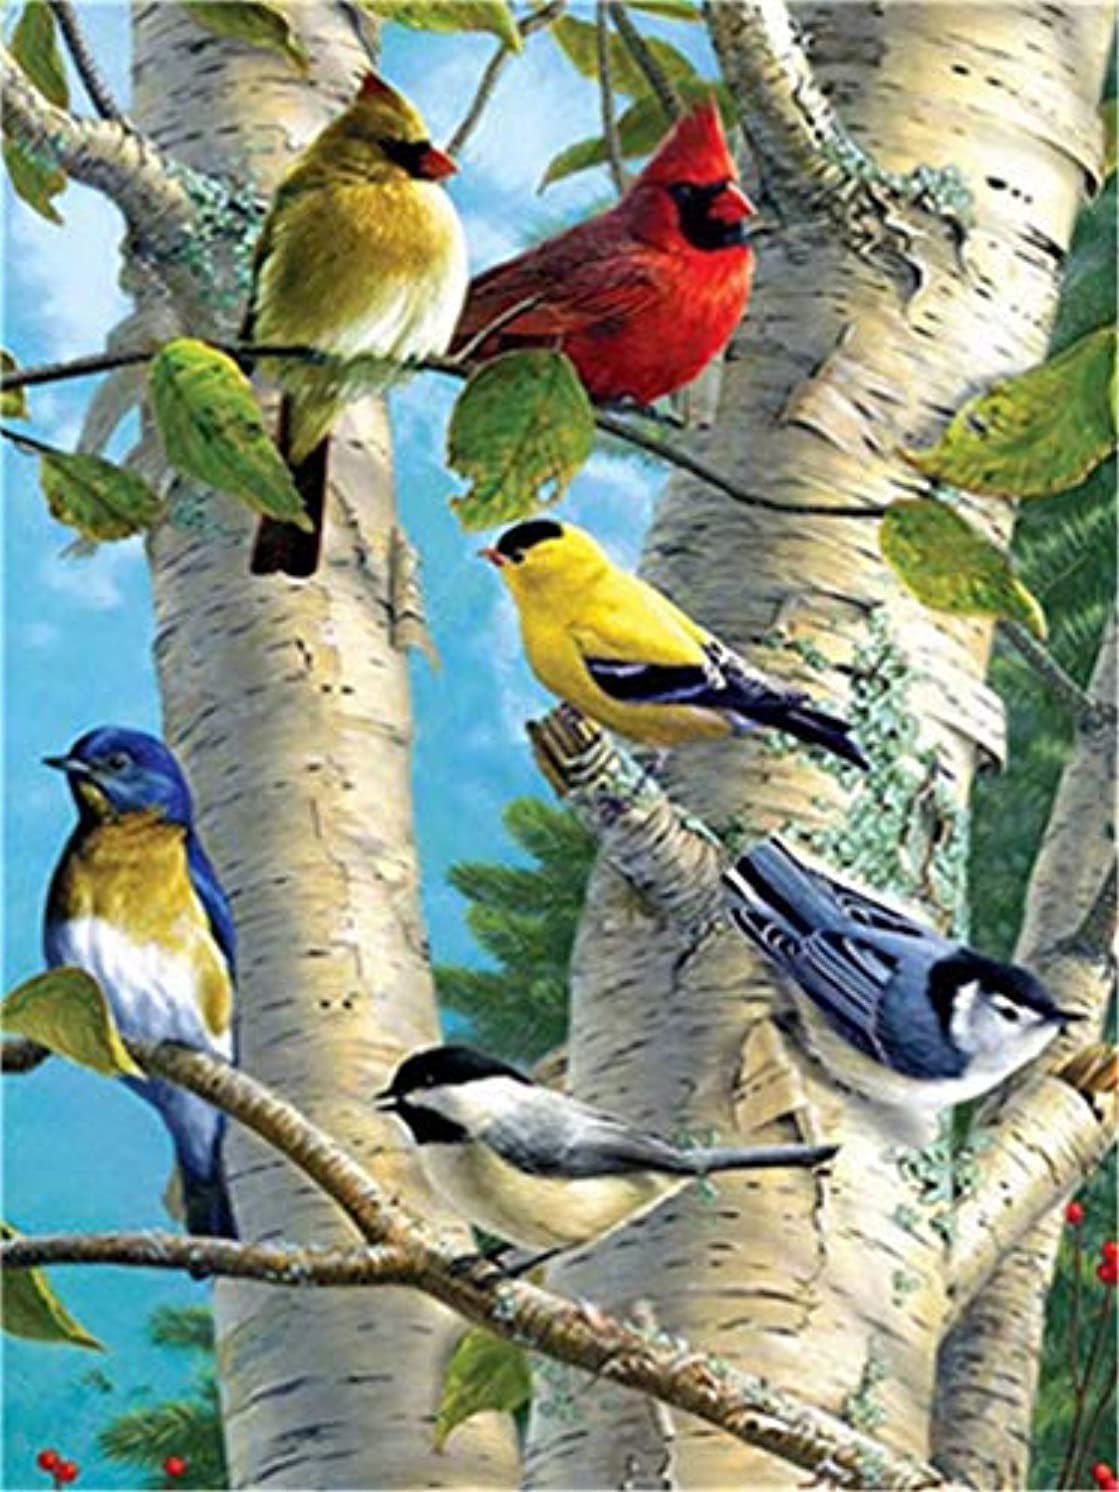 YEESAM ART DIY Paint by Numbers for Adults Beginner Kids, Birds Parrot Tree 16x20 inch Linen Canvas Acrylic Stress Less Number Painting Gifts (Parrot, Without Frame)